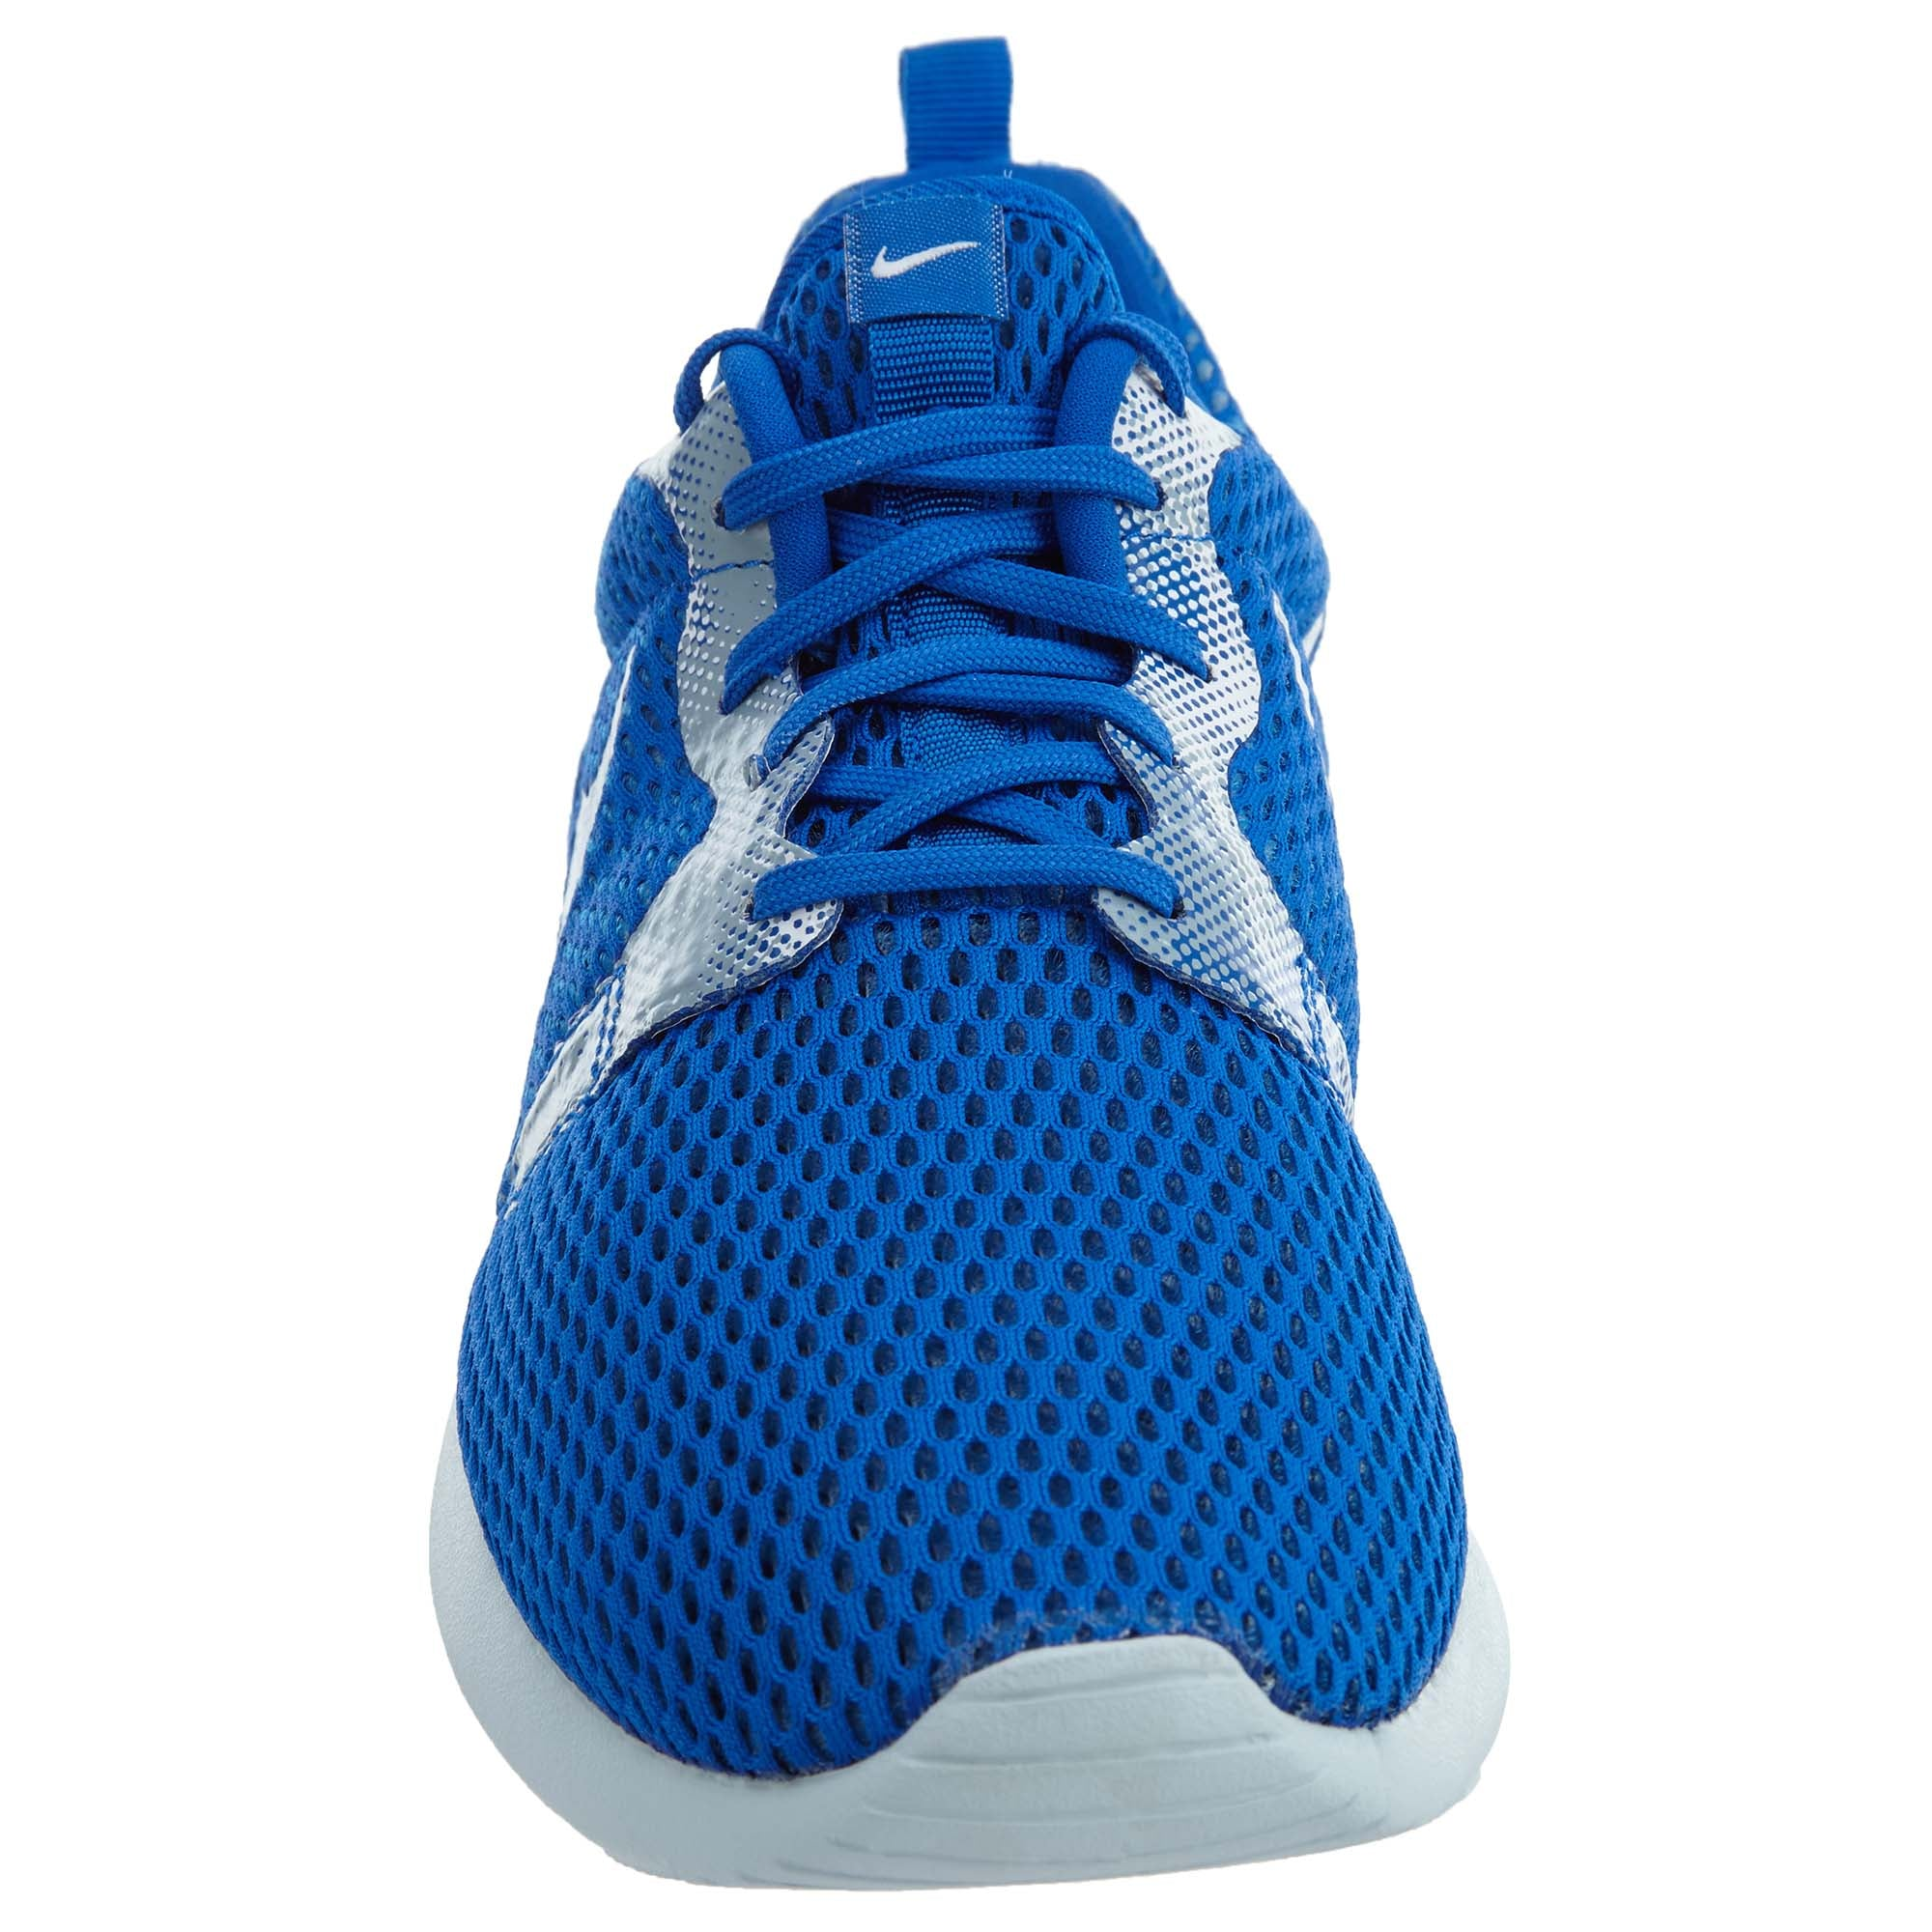 98df4d72a574 Nike Roshe One Hyp Br Gpx Mens Style   859526